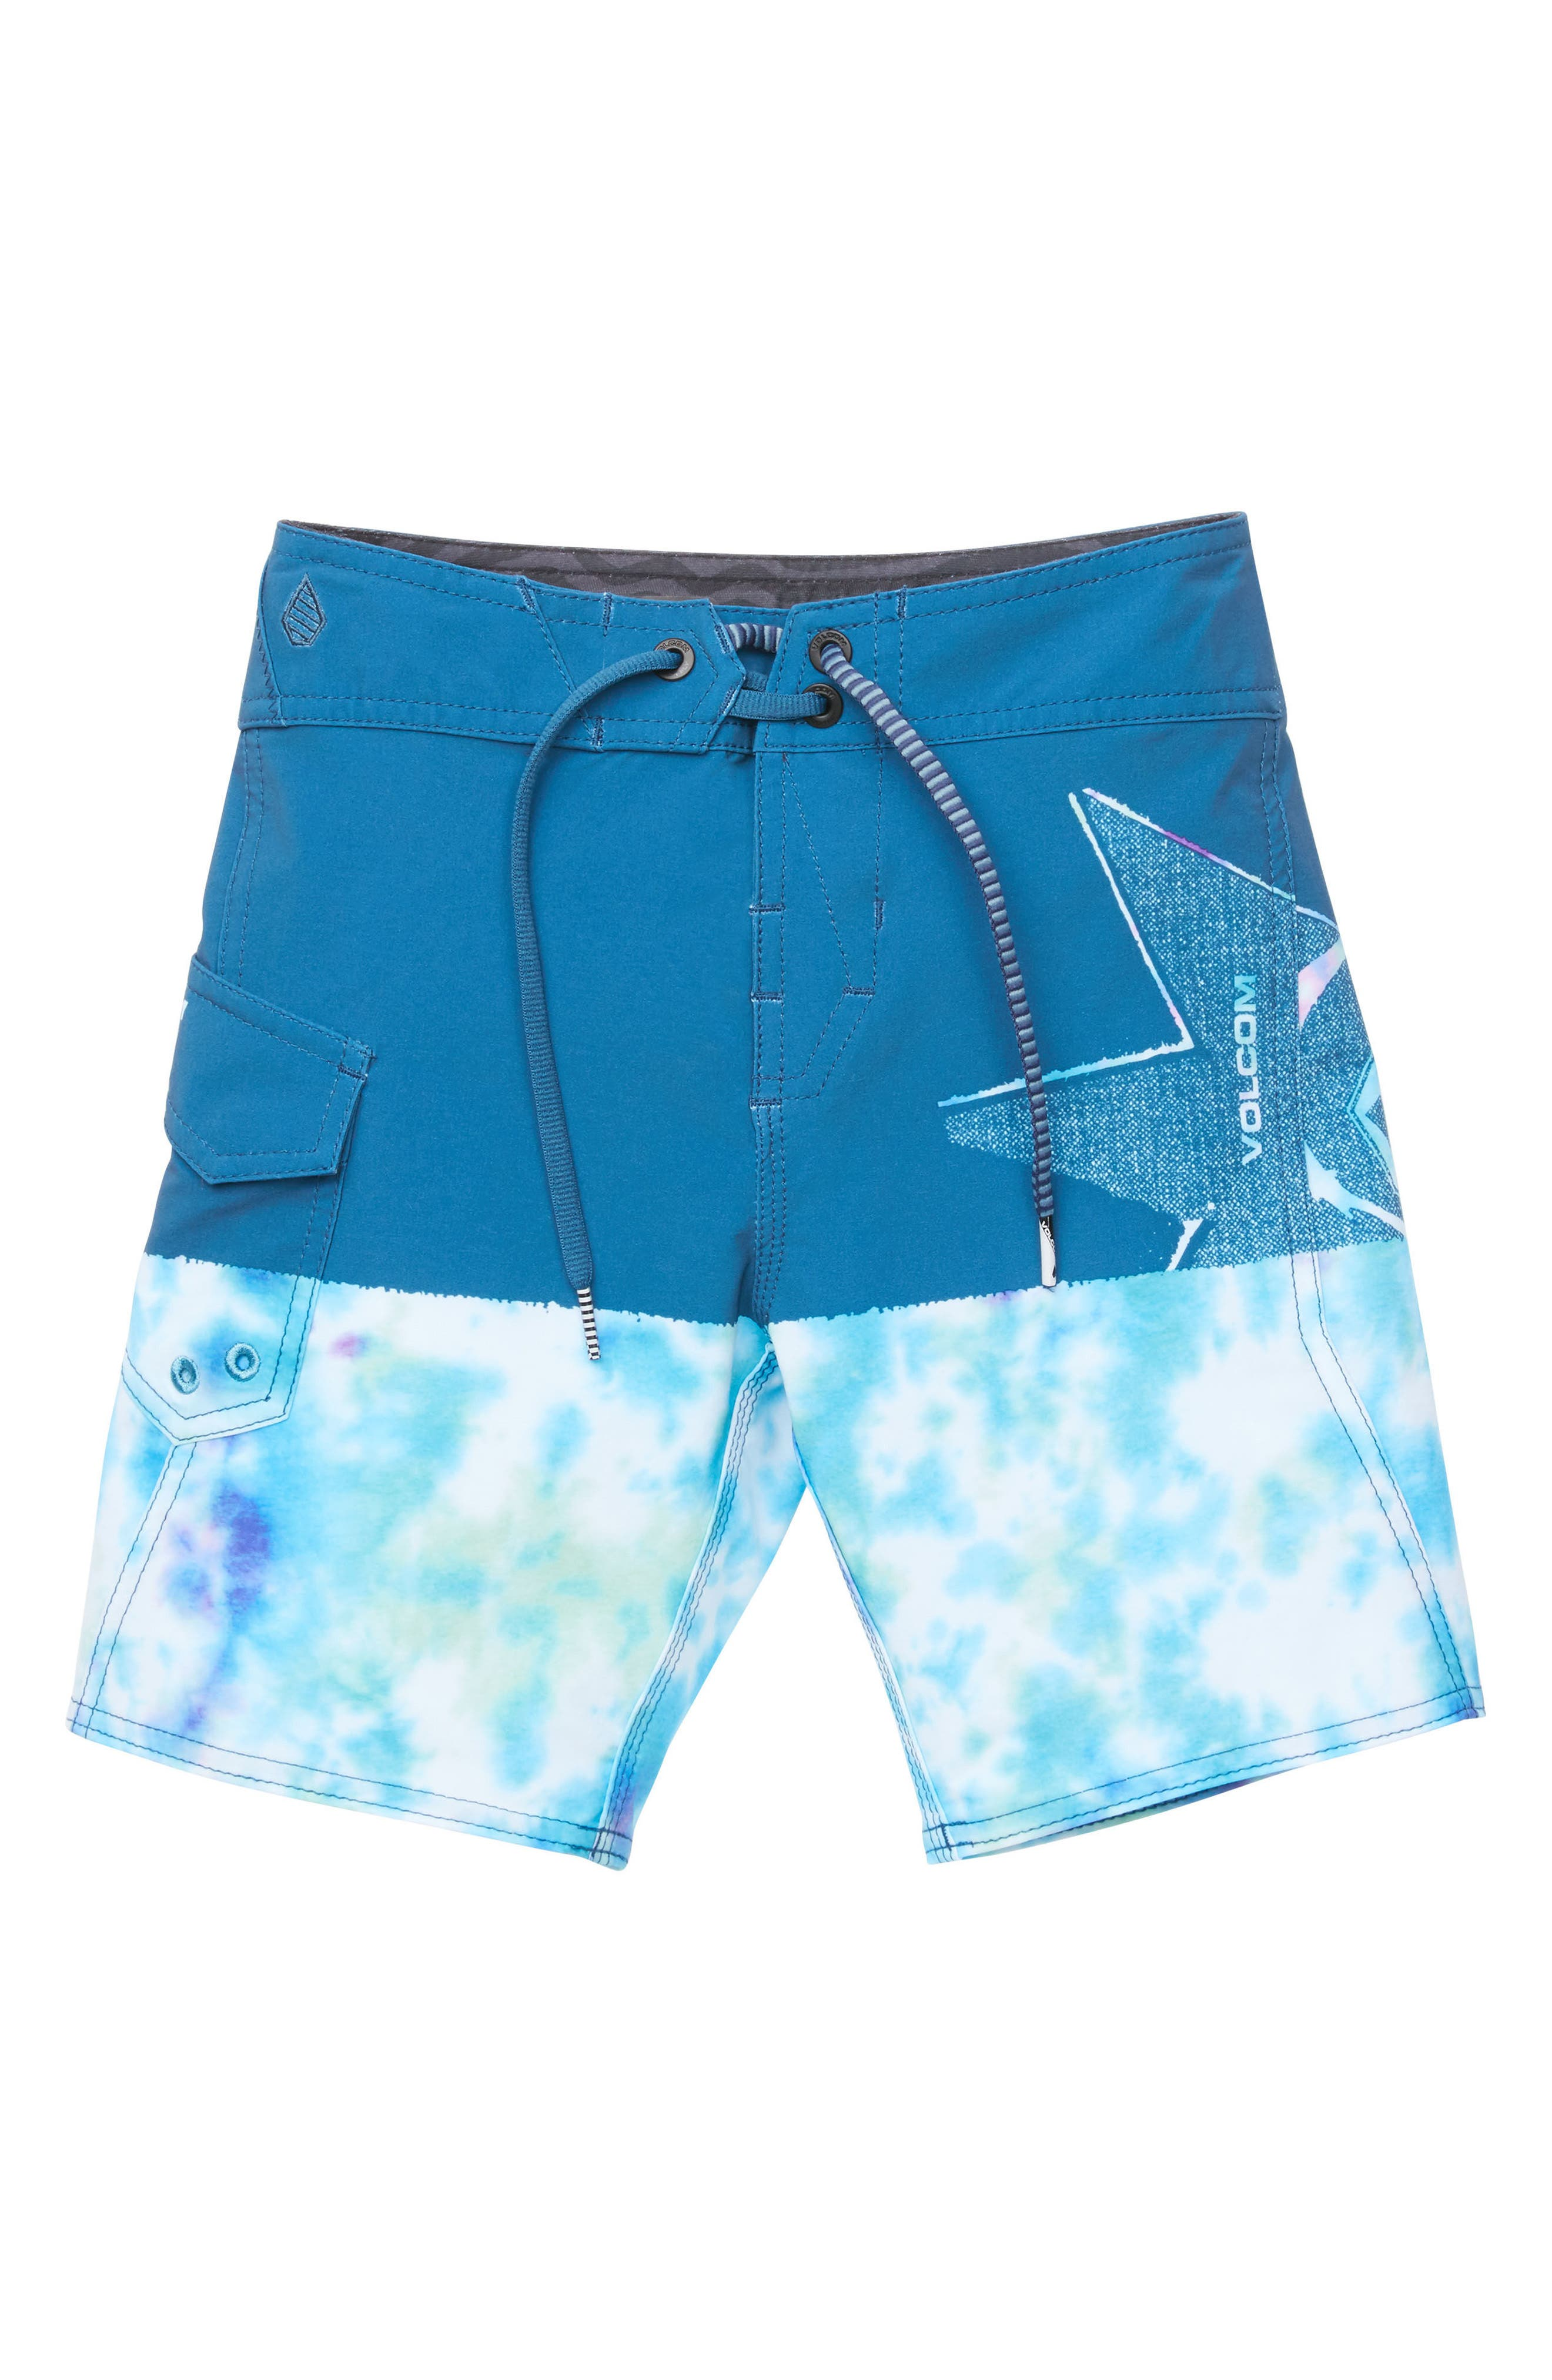 Lido Block Mod Board Shorts,                             Main thumbnail 1, color,                             Multi